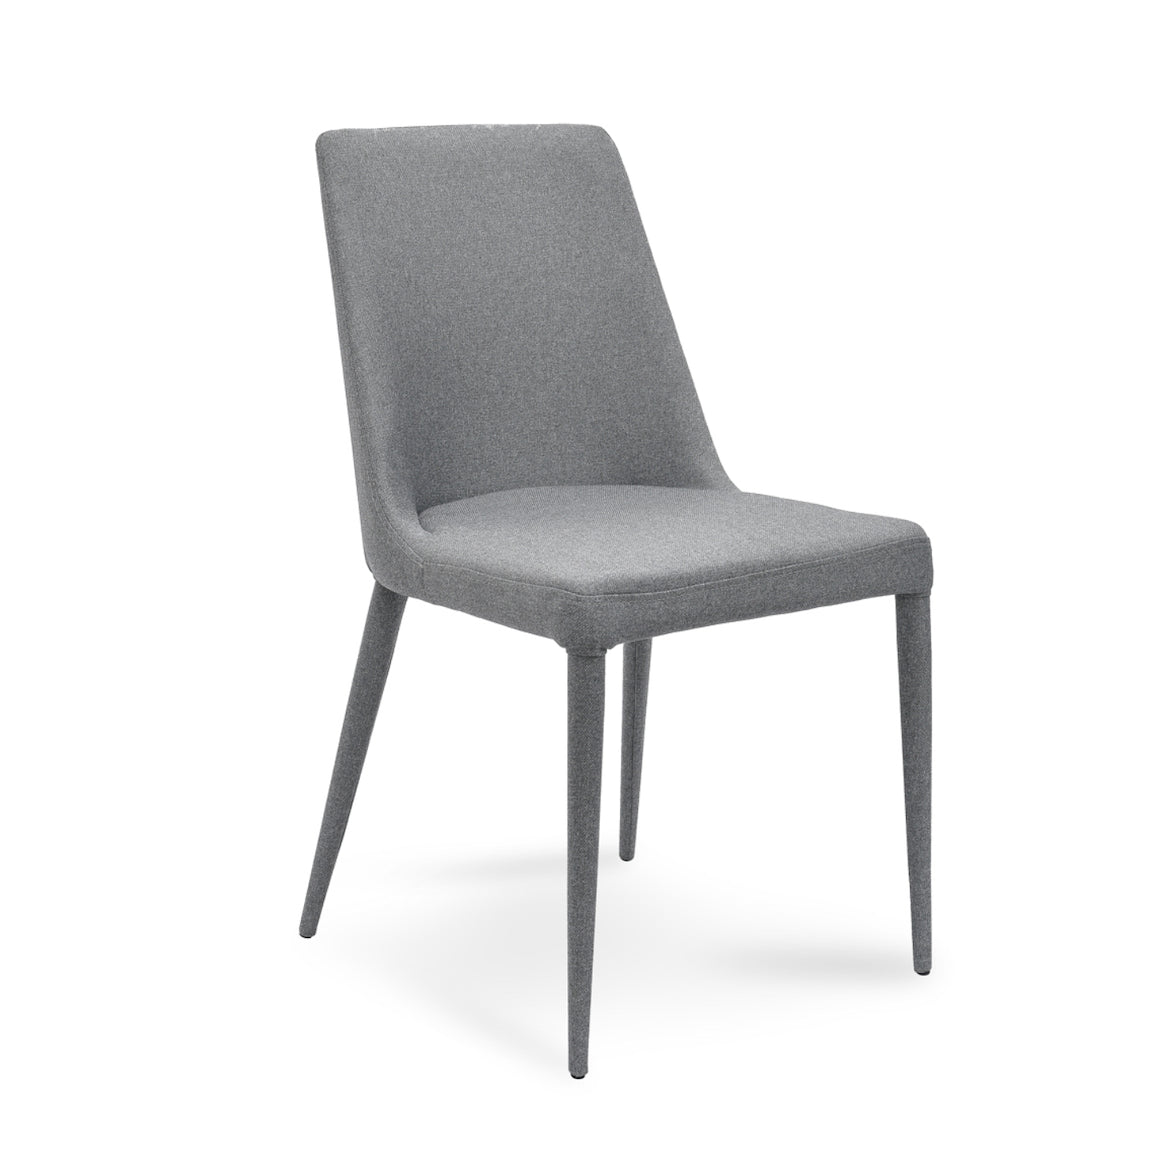 Dixon Dining Chair | London Grey